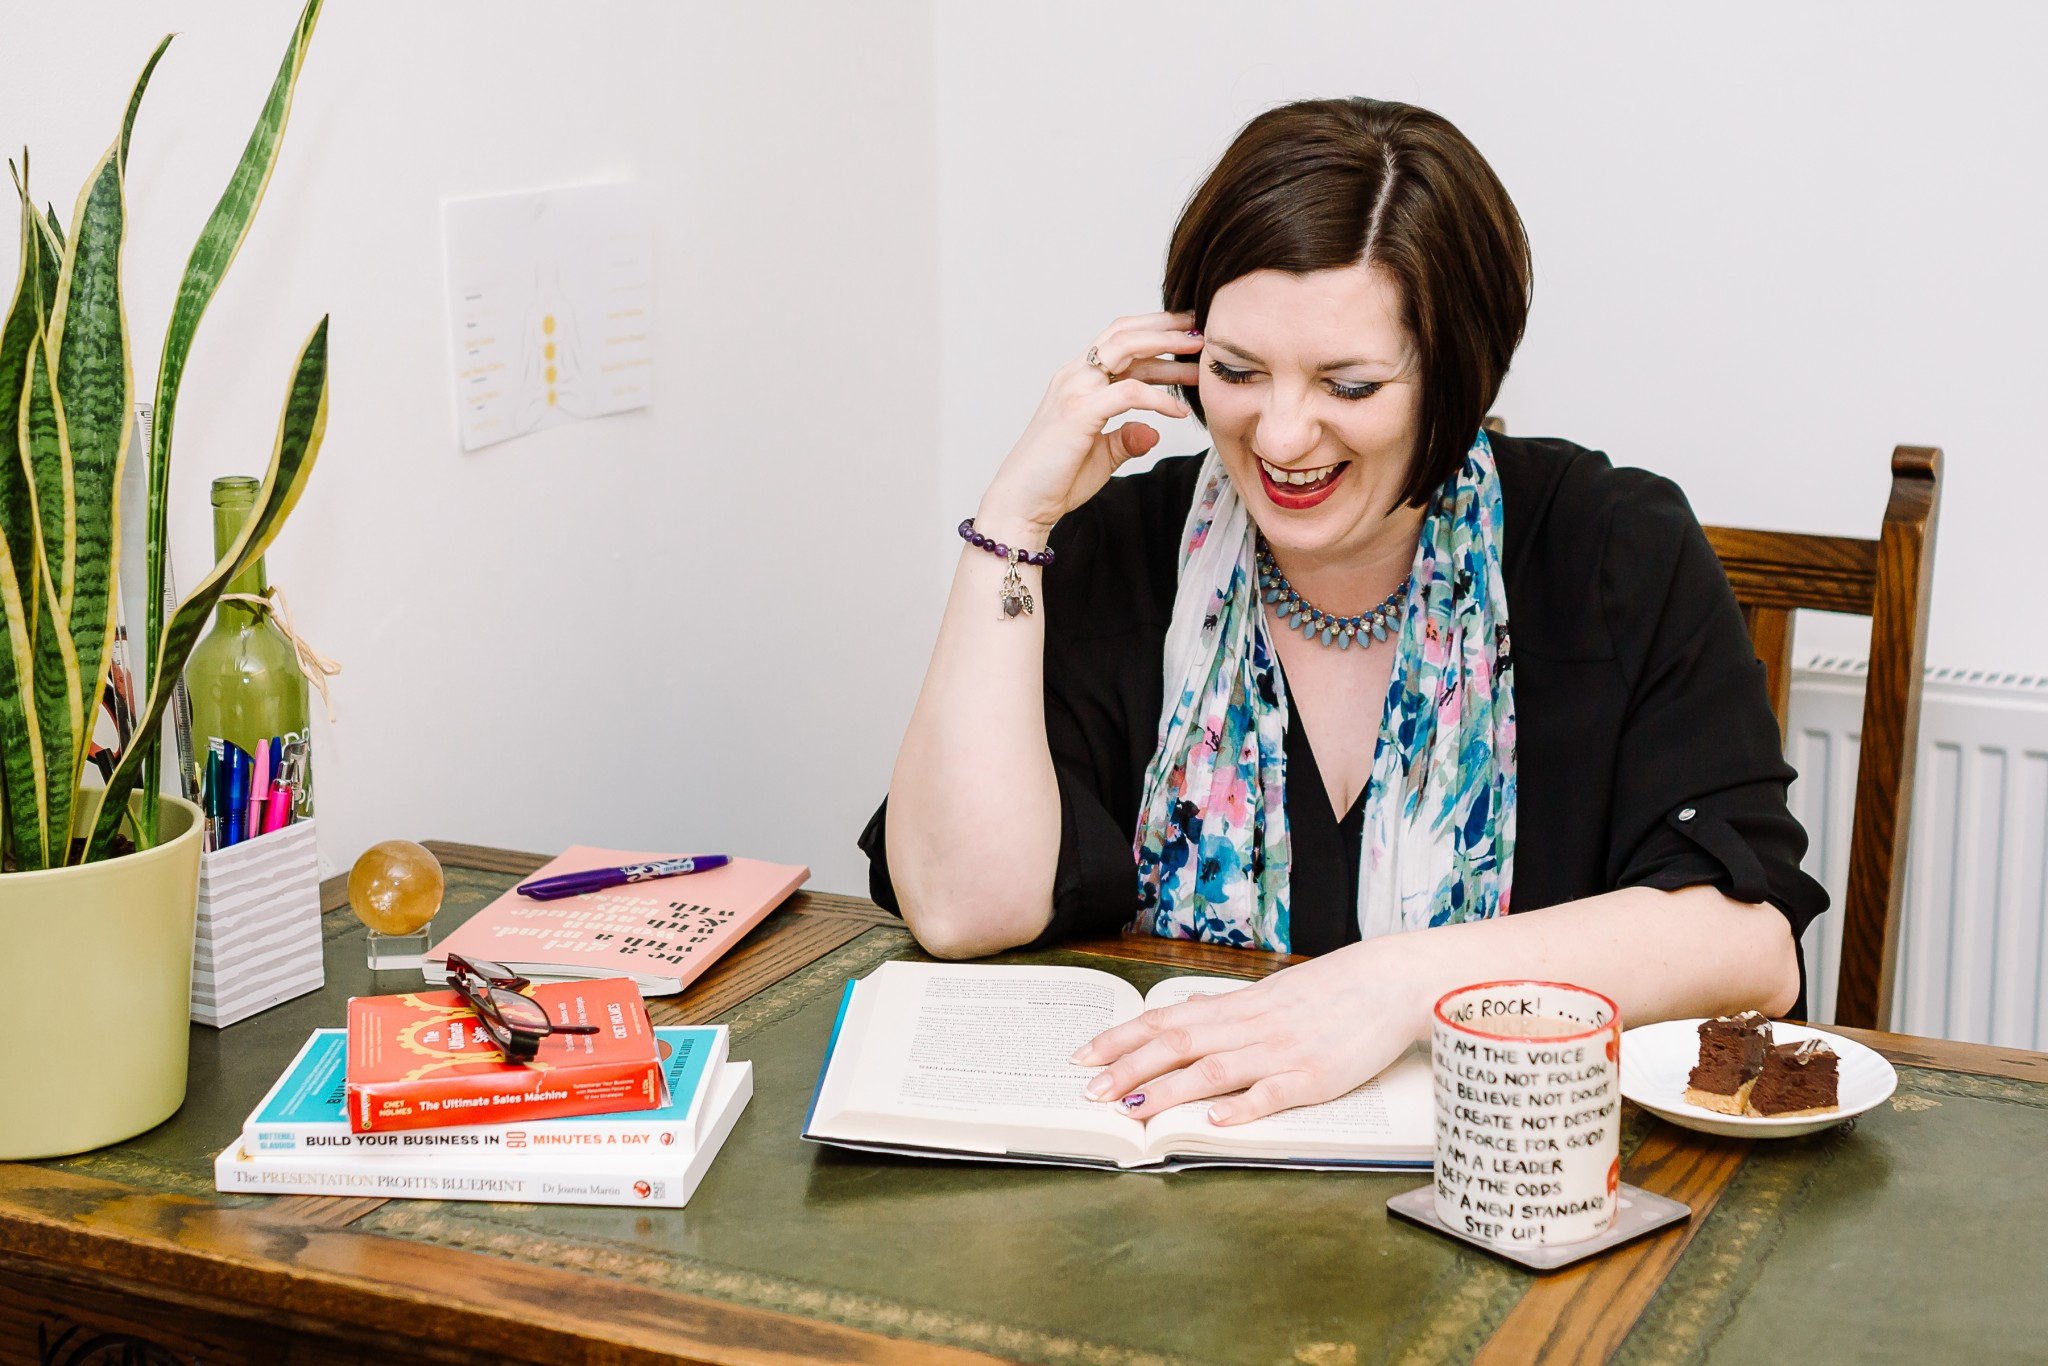 A shot from a personal branding photography session with One of Many life and business coach Tabitha Pascoe, who sits at her desk with an open book, smiling.